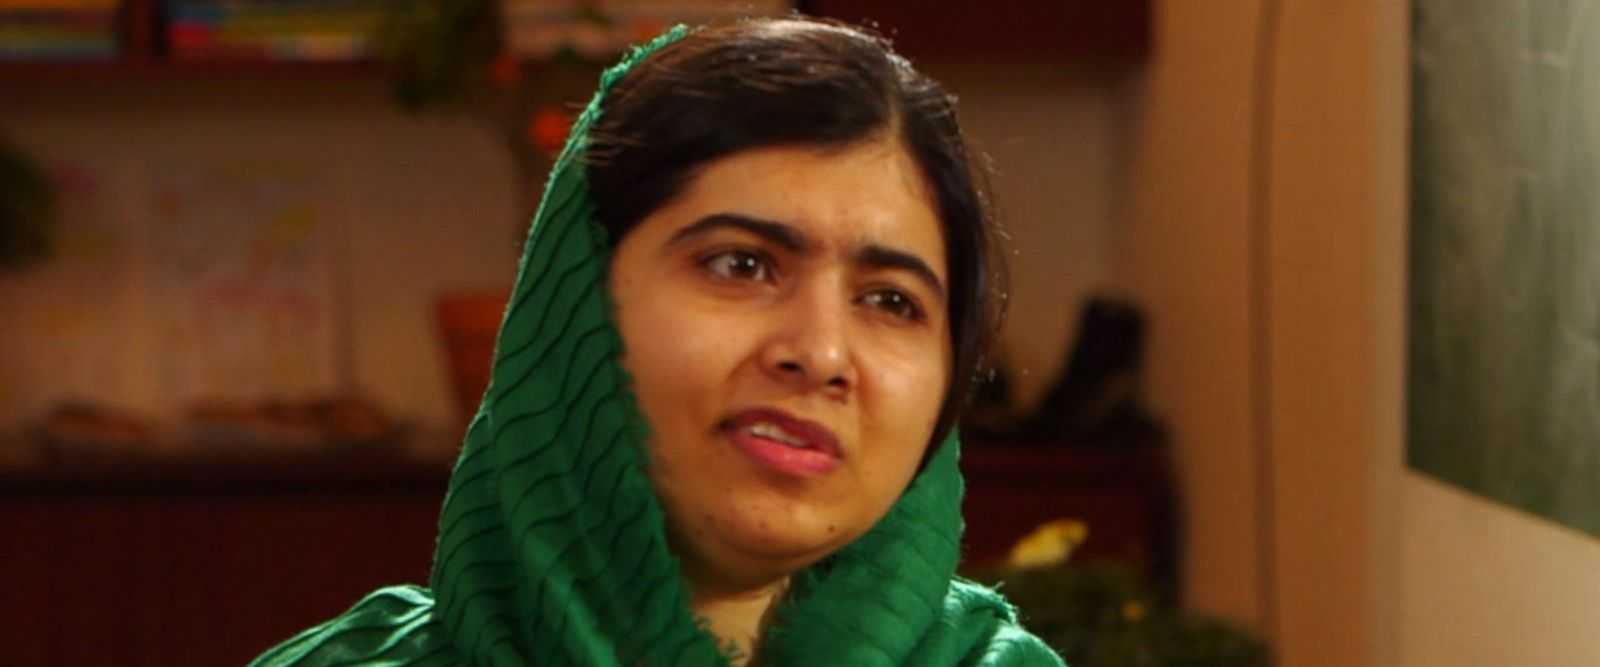 VIDEO: Apple's Tim Cook and Malala Team Up